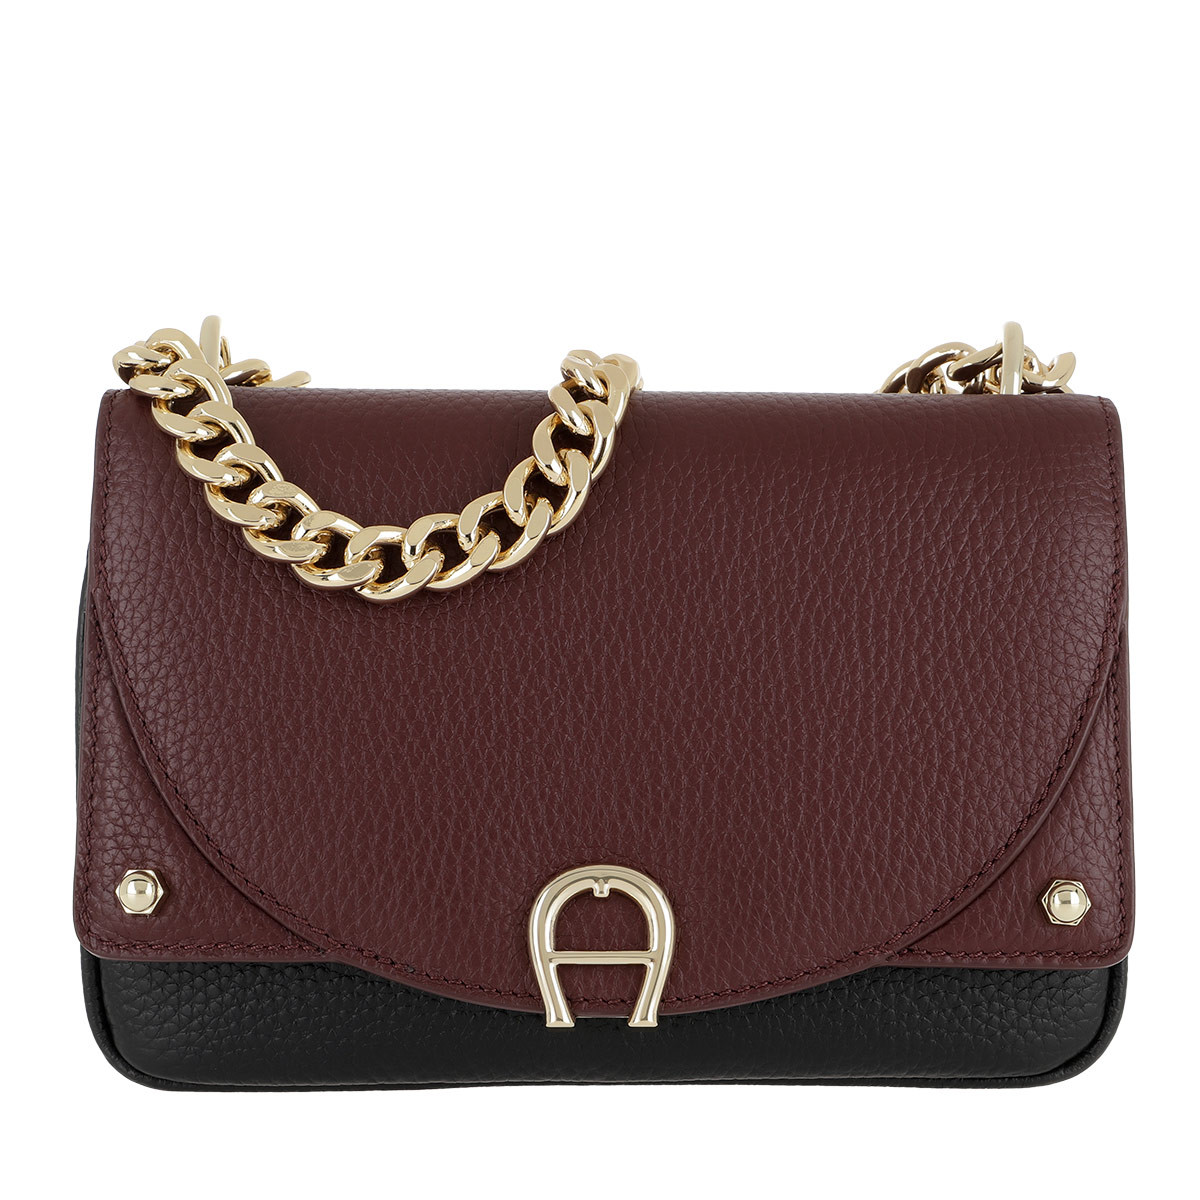 Aigner Umhängetasche - Diadora Crossbody Bag Extra Small Burgundy - in lila - für Damen